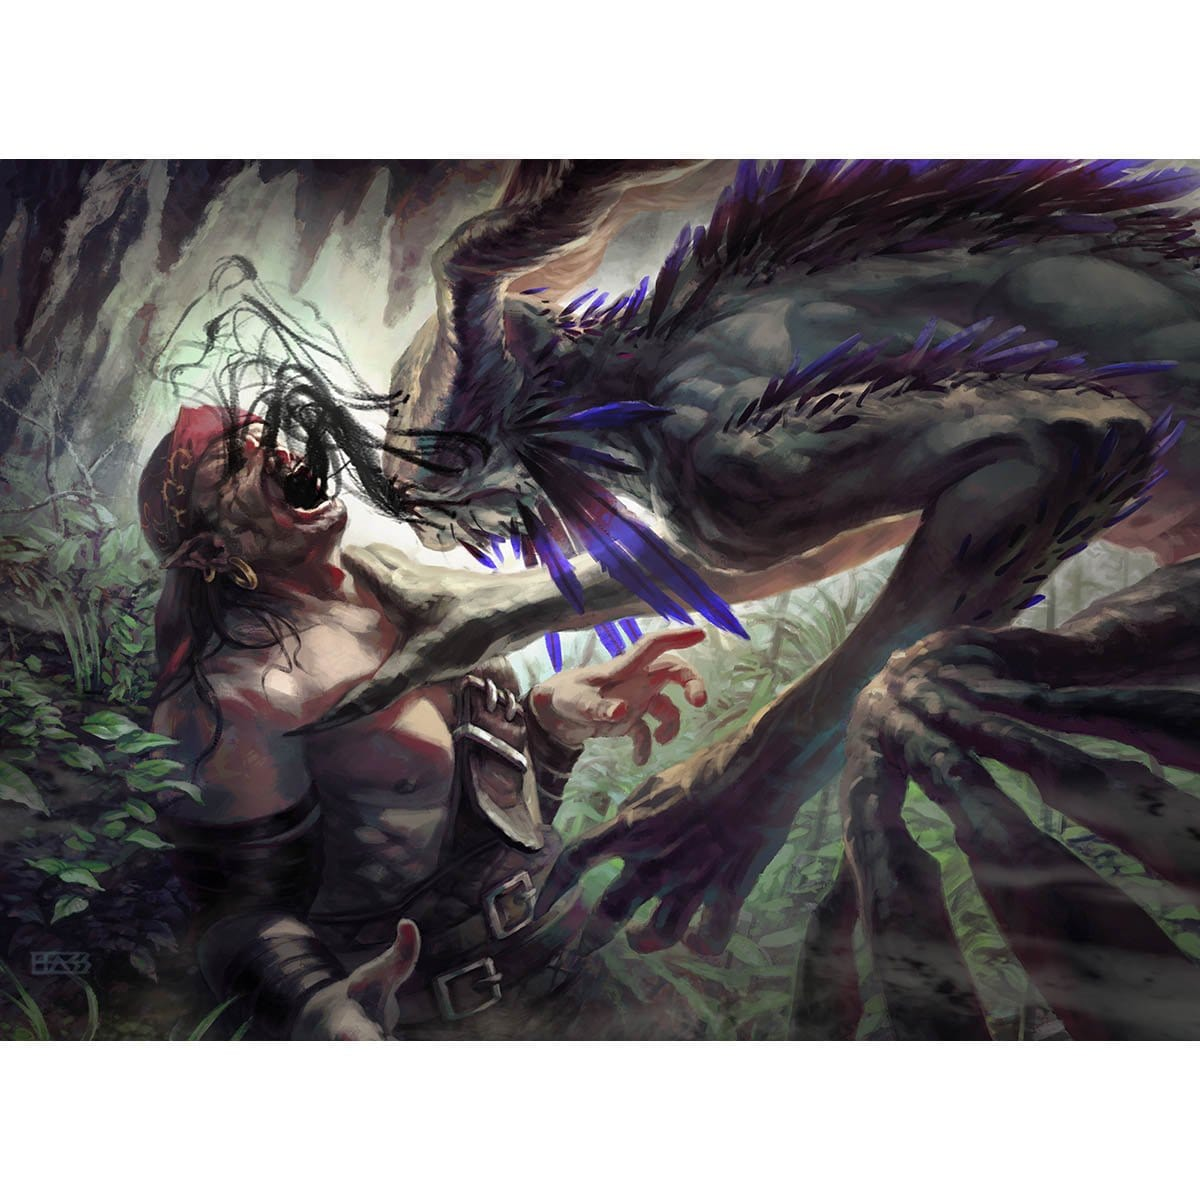 Dark Nourishment Print - Print - Original Magic Art - Accessories for Magic the Gathering and other card games